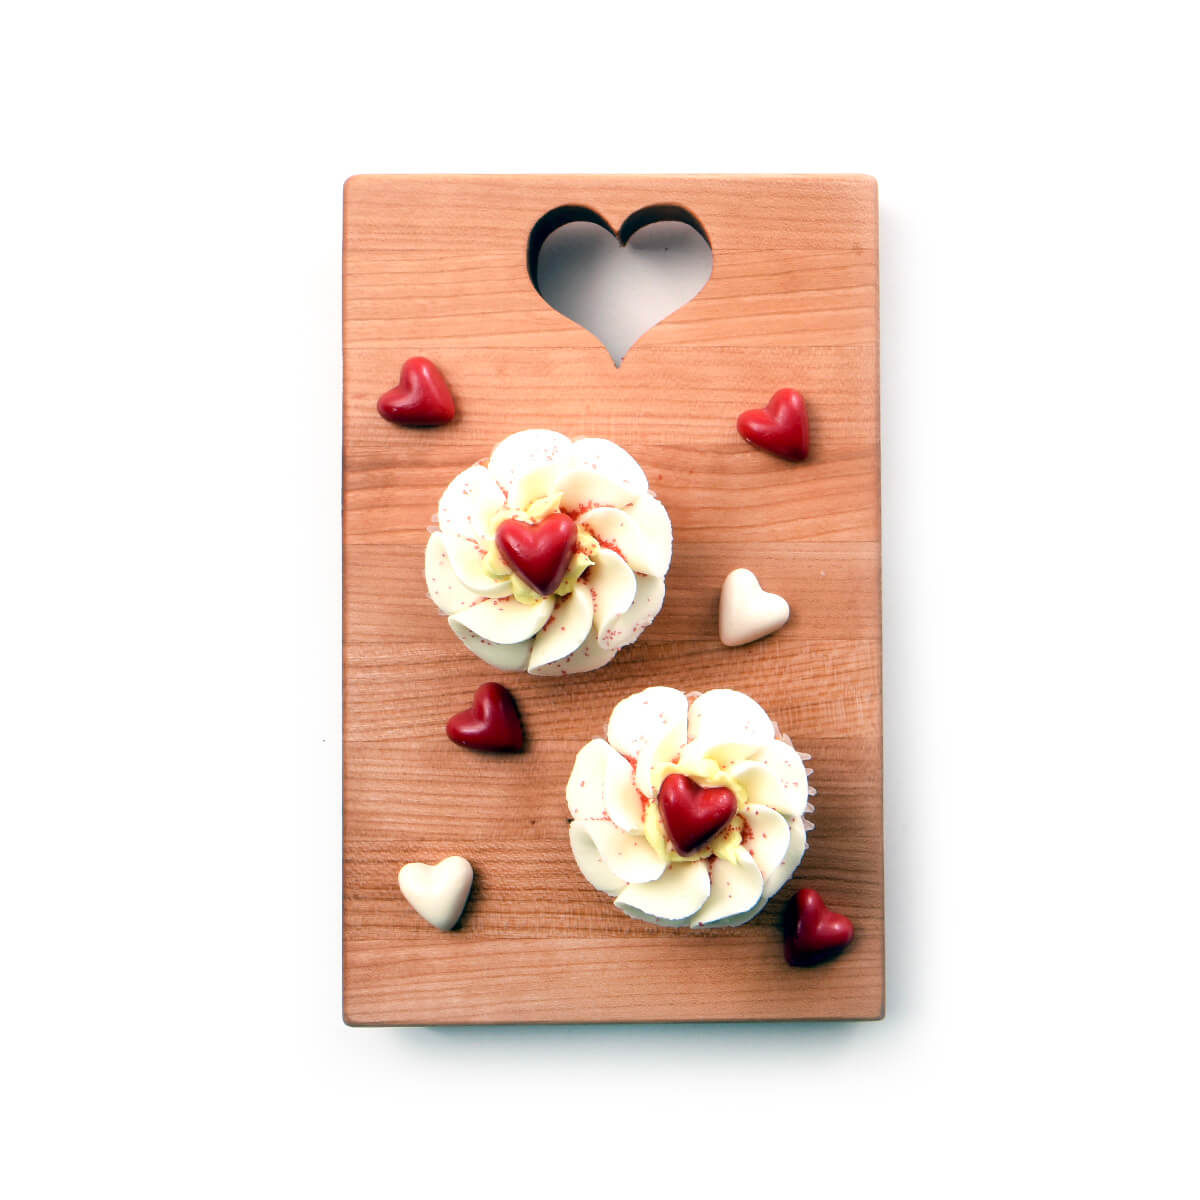 heart chopping board, heart shape cut out of top, wooden cutting board